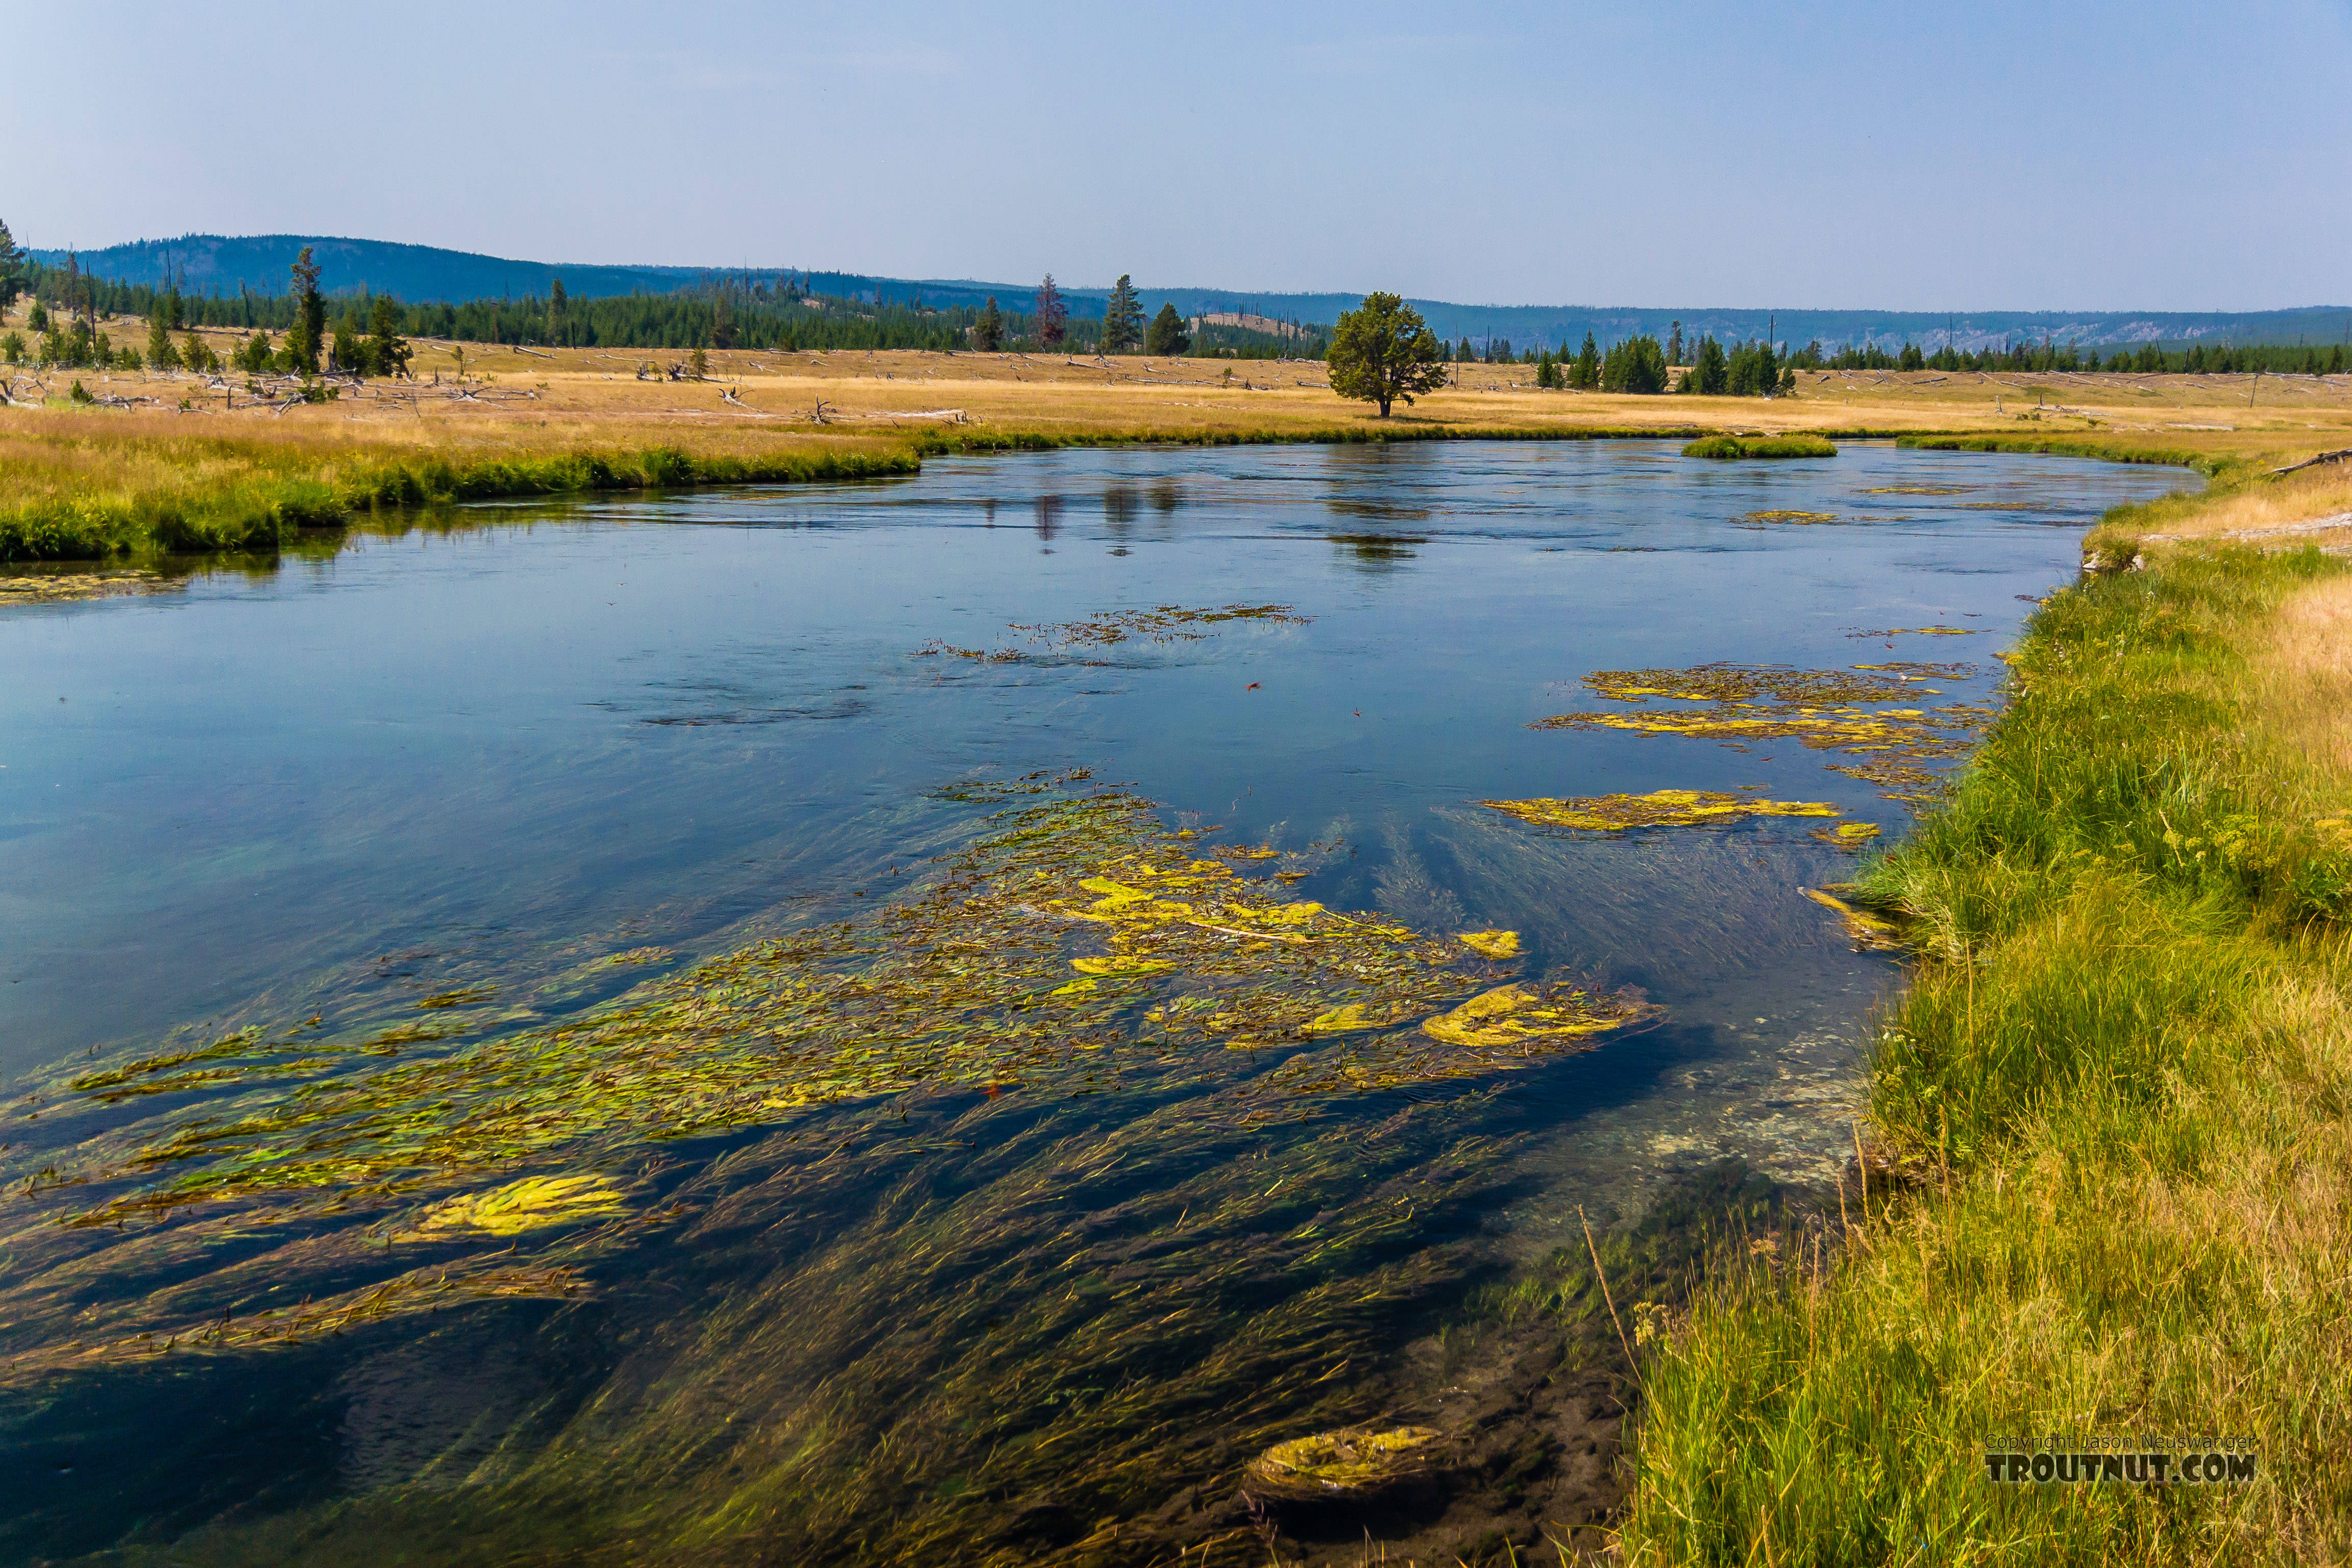 From the Firehole River in Wyoming.